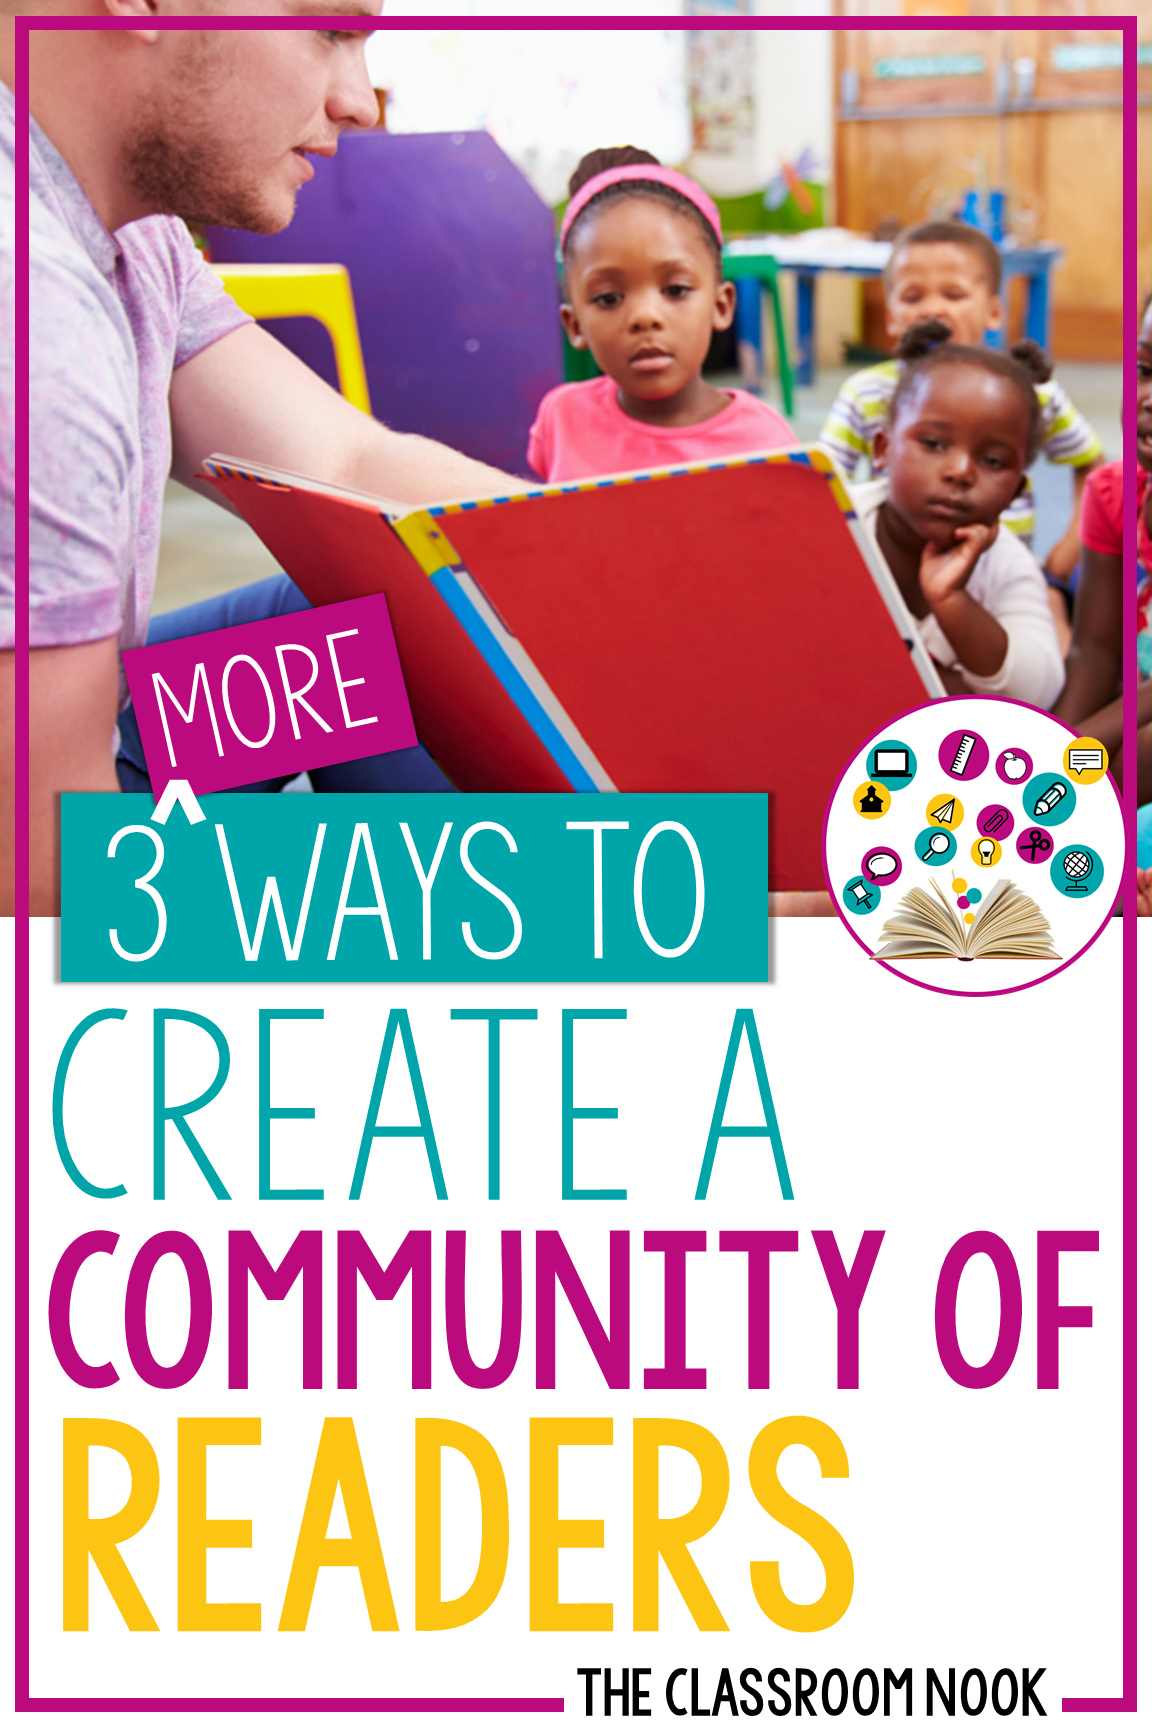 Want to create a positive community of readers in your elementary classroom? This post has 3 ideas to incorporate into your classroom to help establish a classroom community around reading! #classroomcommunity #reading #elementary #teacher